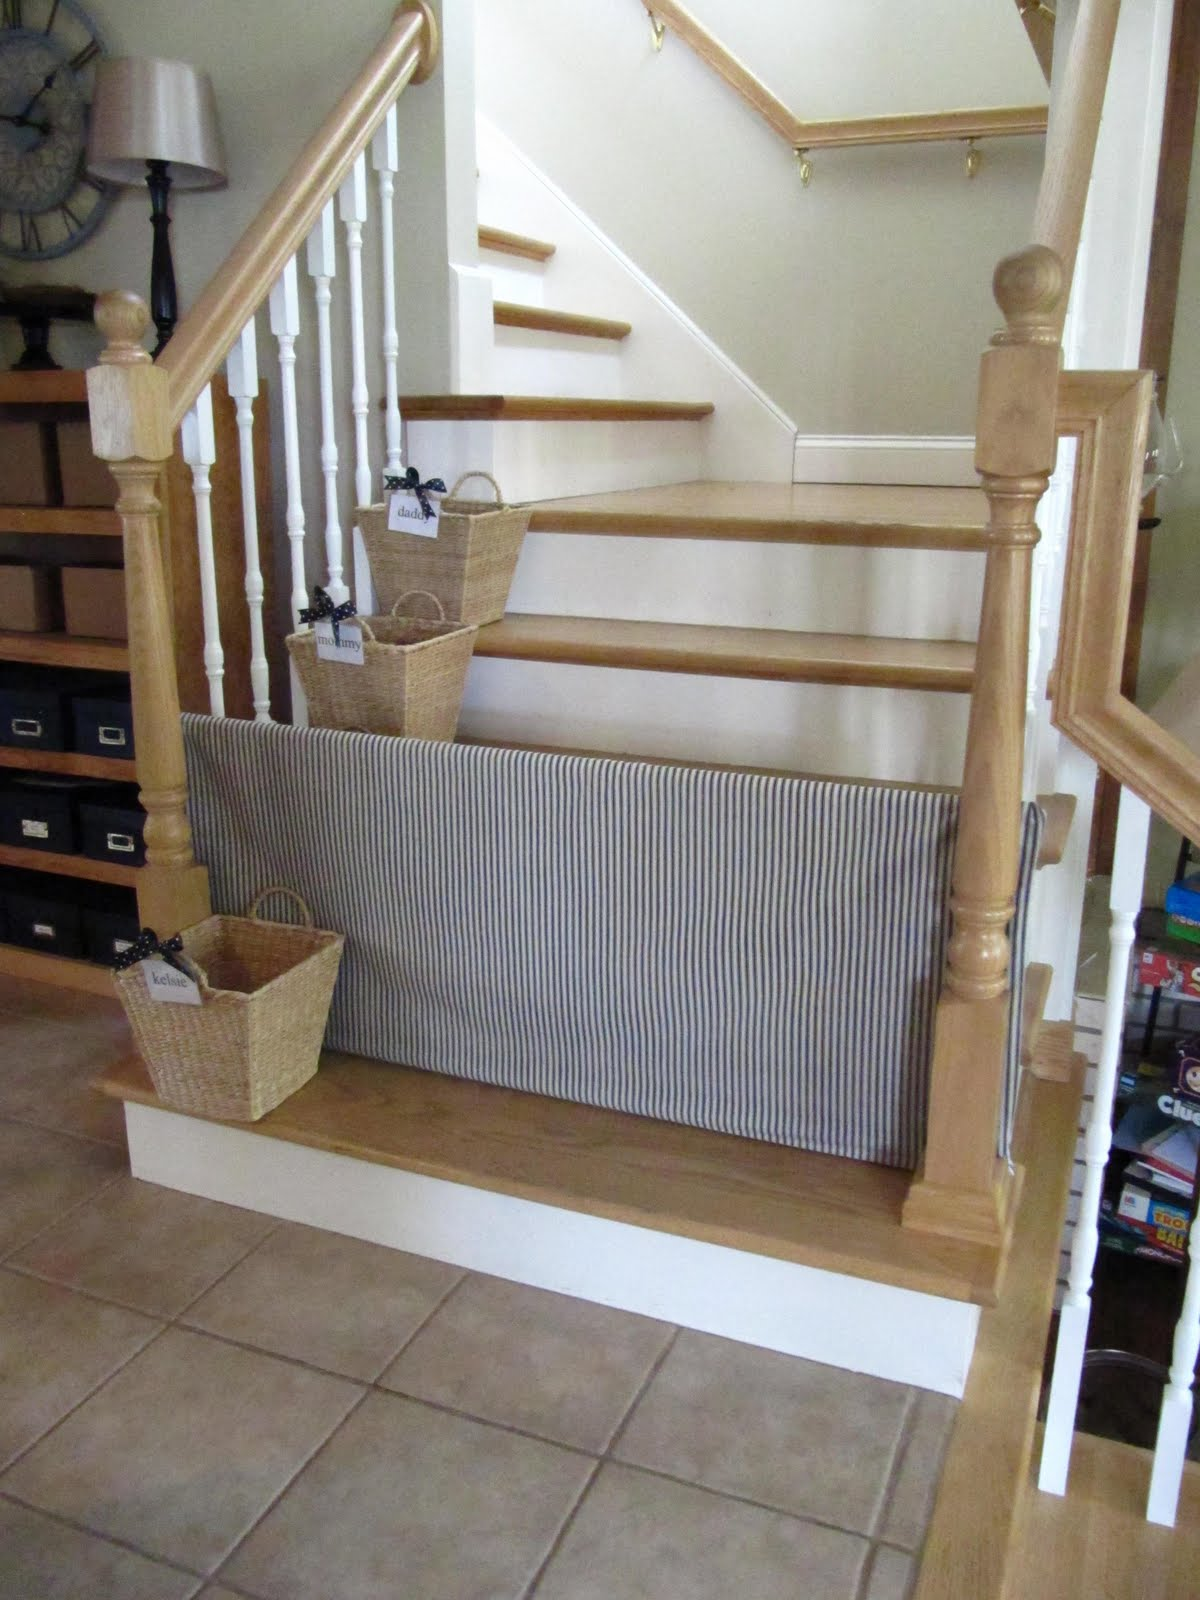 Wonderful That Gate Just Rests Between The Spindles Of The Stairs. You Can Slide It  Back And Forth To Get Through. Tutorial: Sew Many Ways